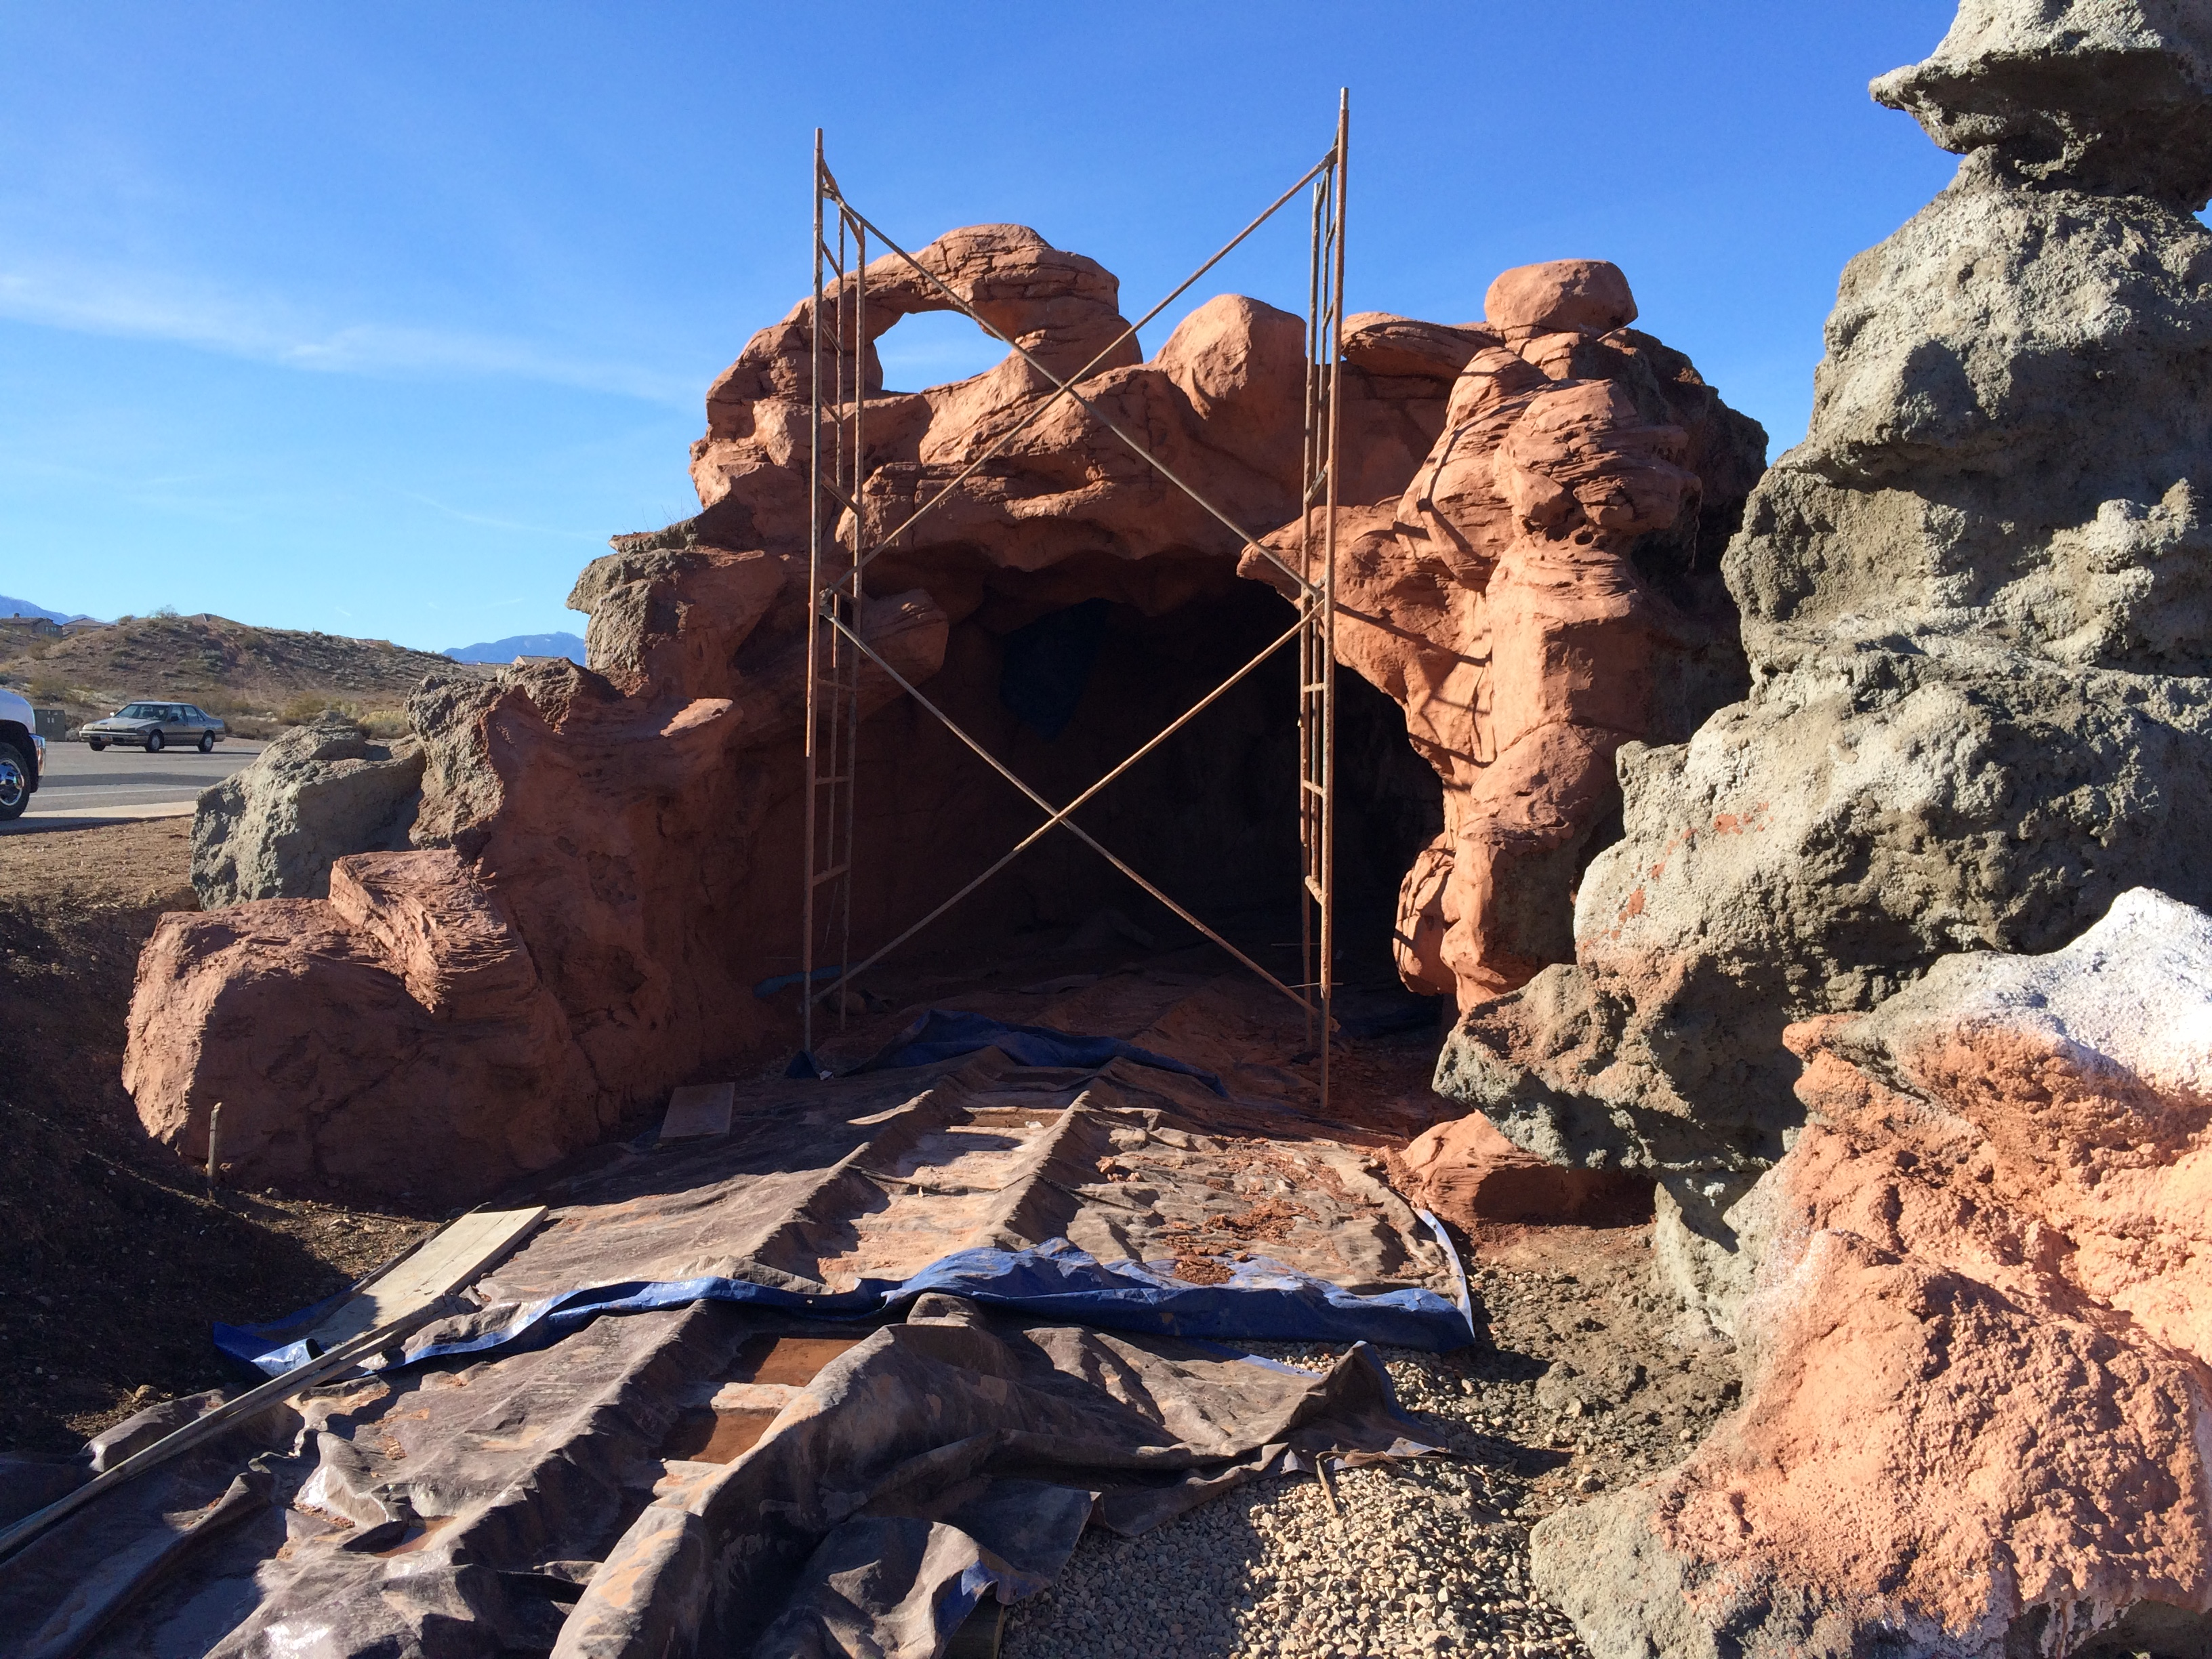 Faux-rock features at the St. George All Abilities Park and Playground are nearing completion in time for an anticipated spring opening date. All Abilities Park and Playground, St. George, Utah, Feb. 5, 2016 | Photo by Don Gilman, St. George News